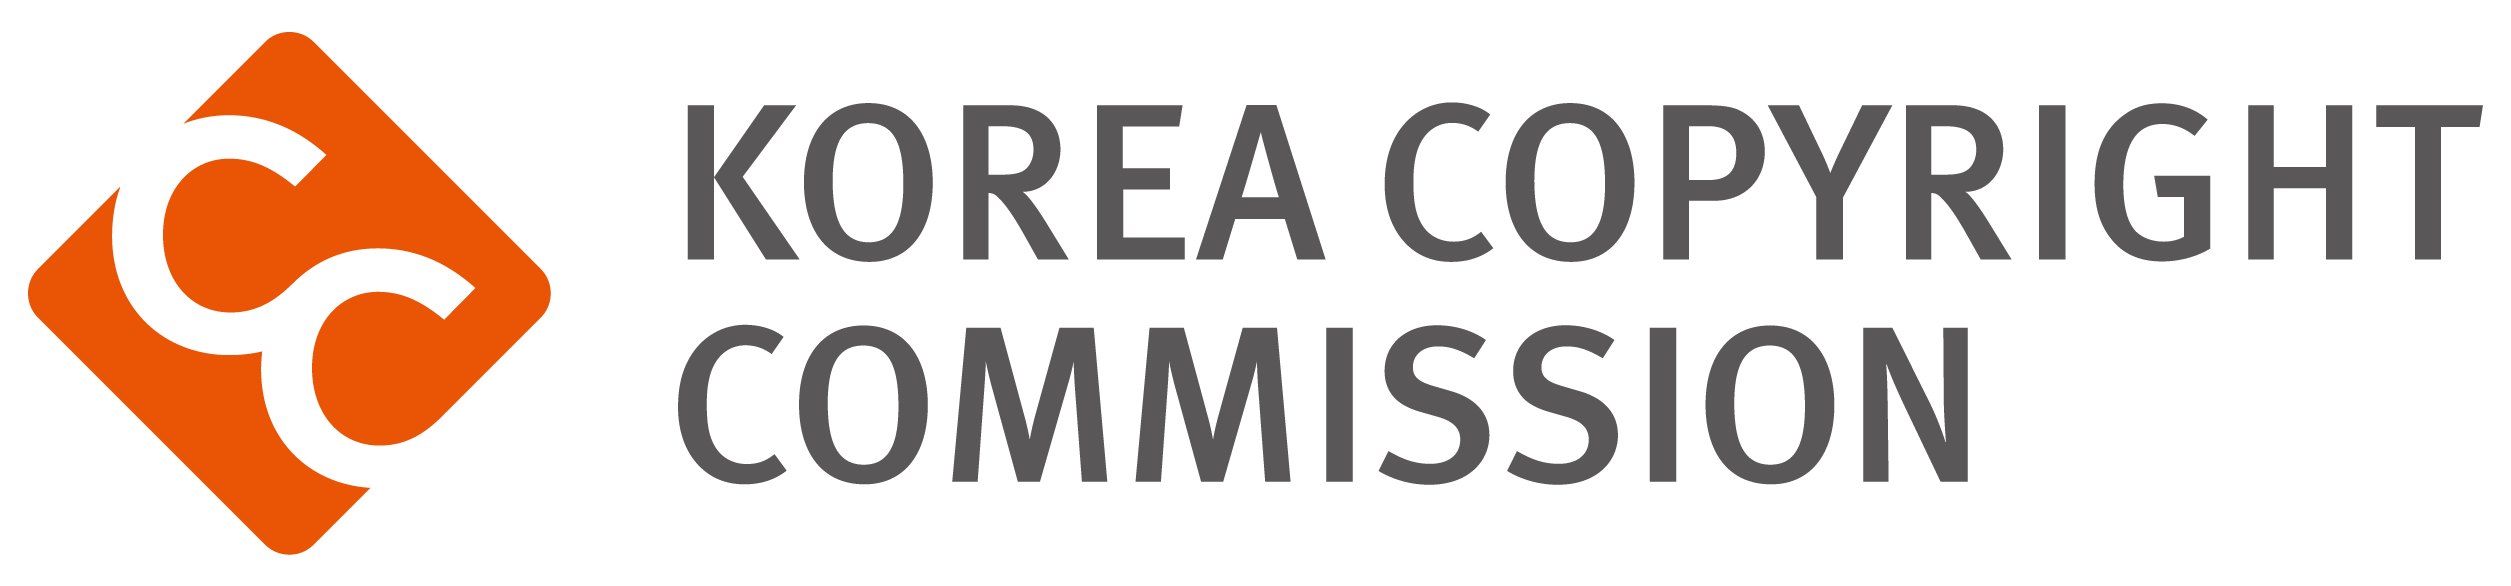 KOREA COPYRIGHT COMMISSION